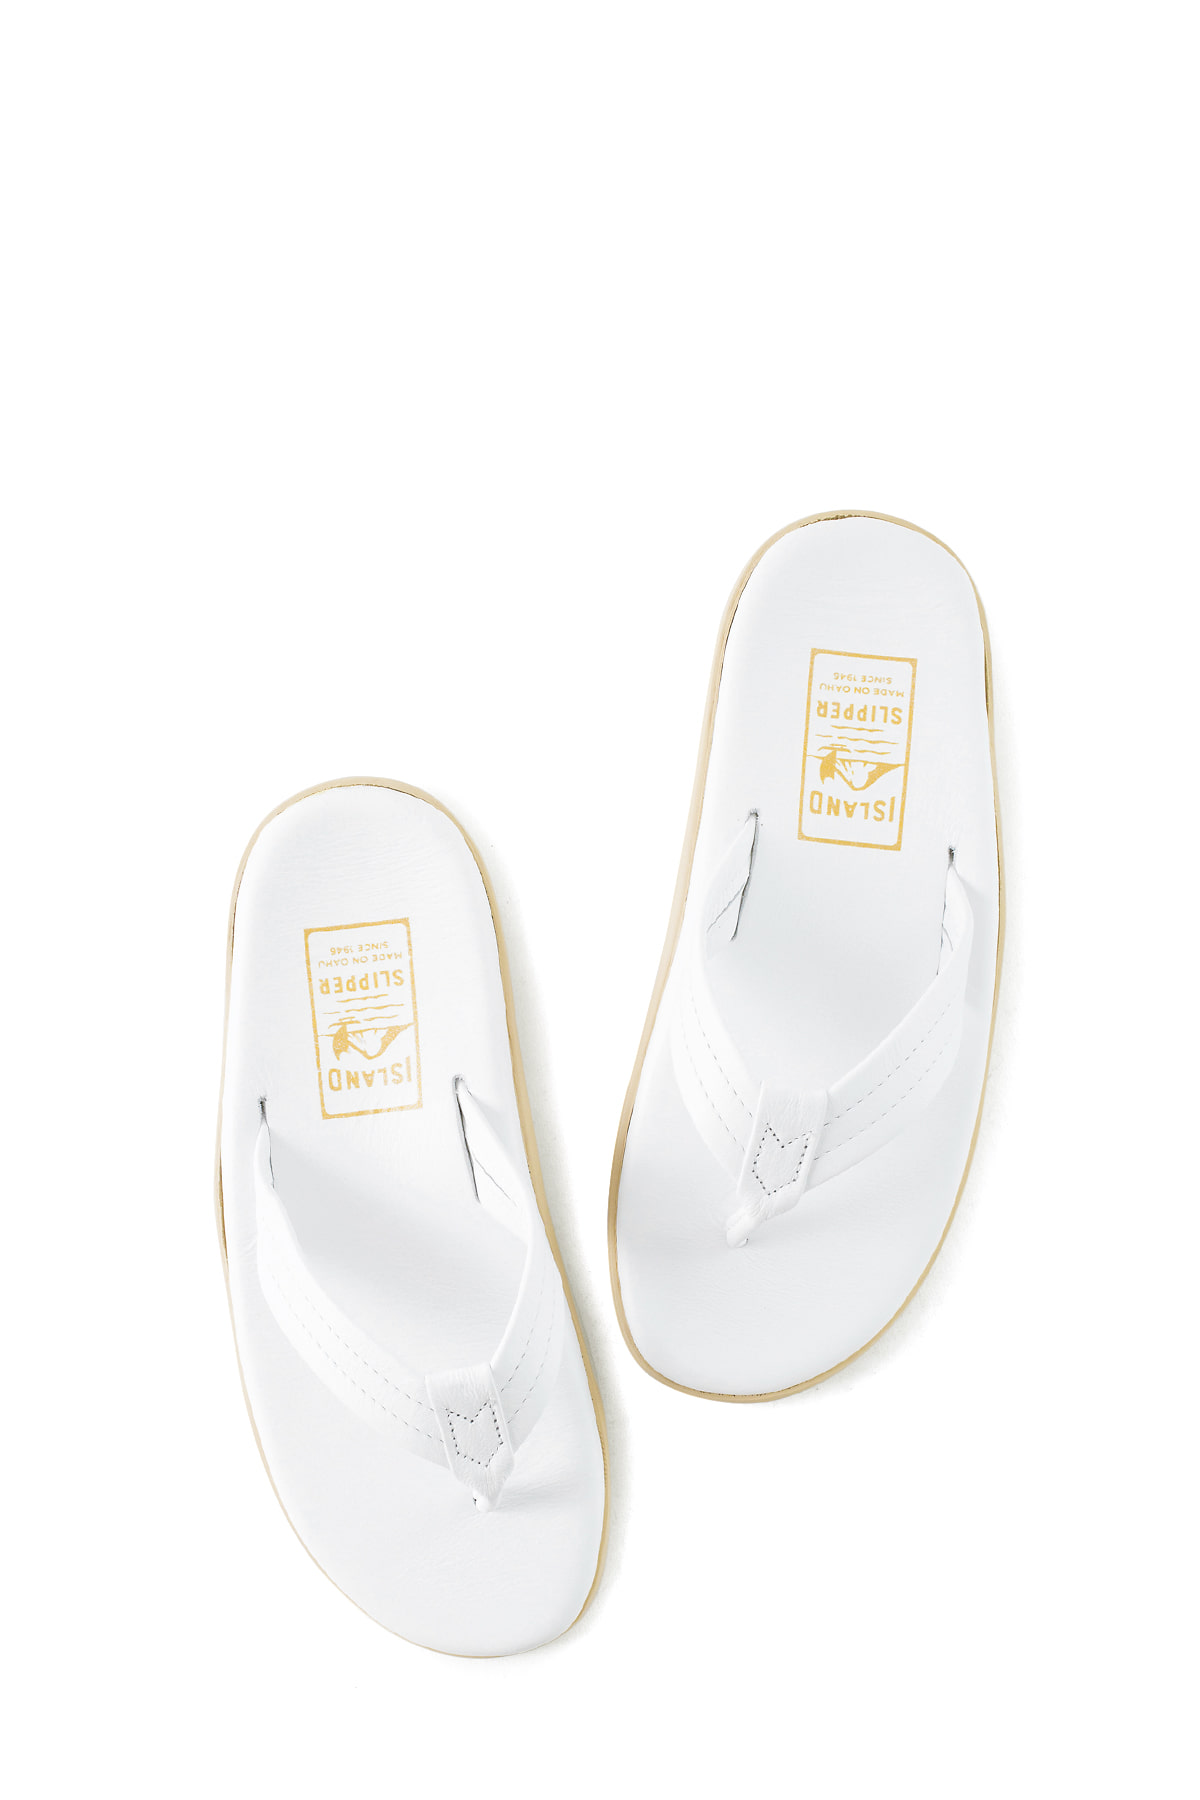 ISLAND SLIPPER : PT202 (White)